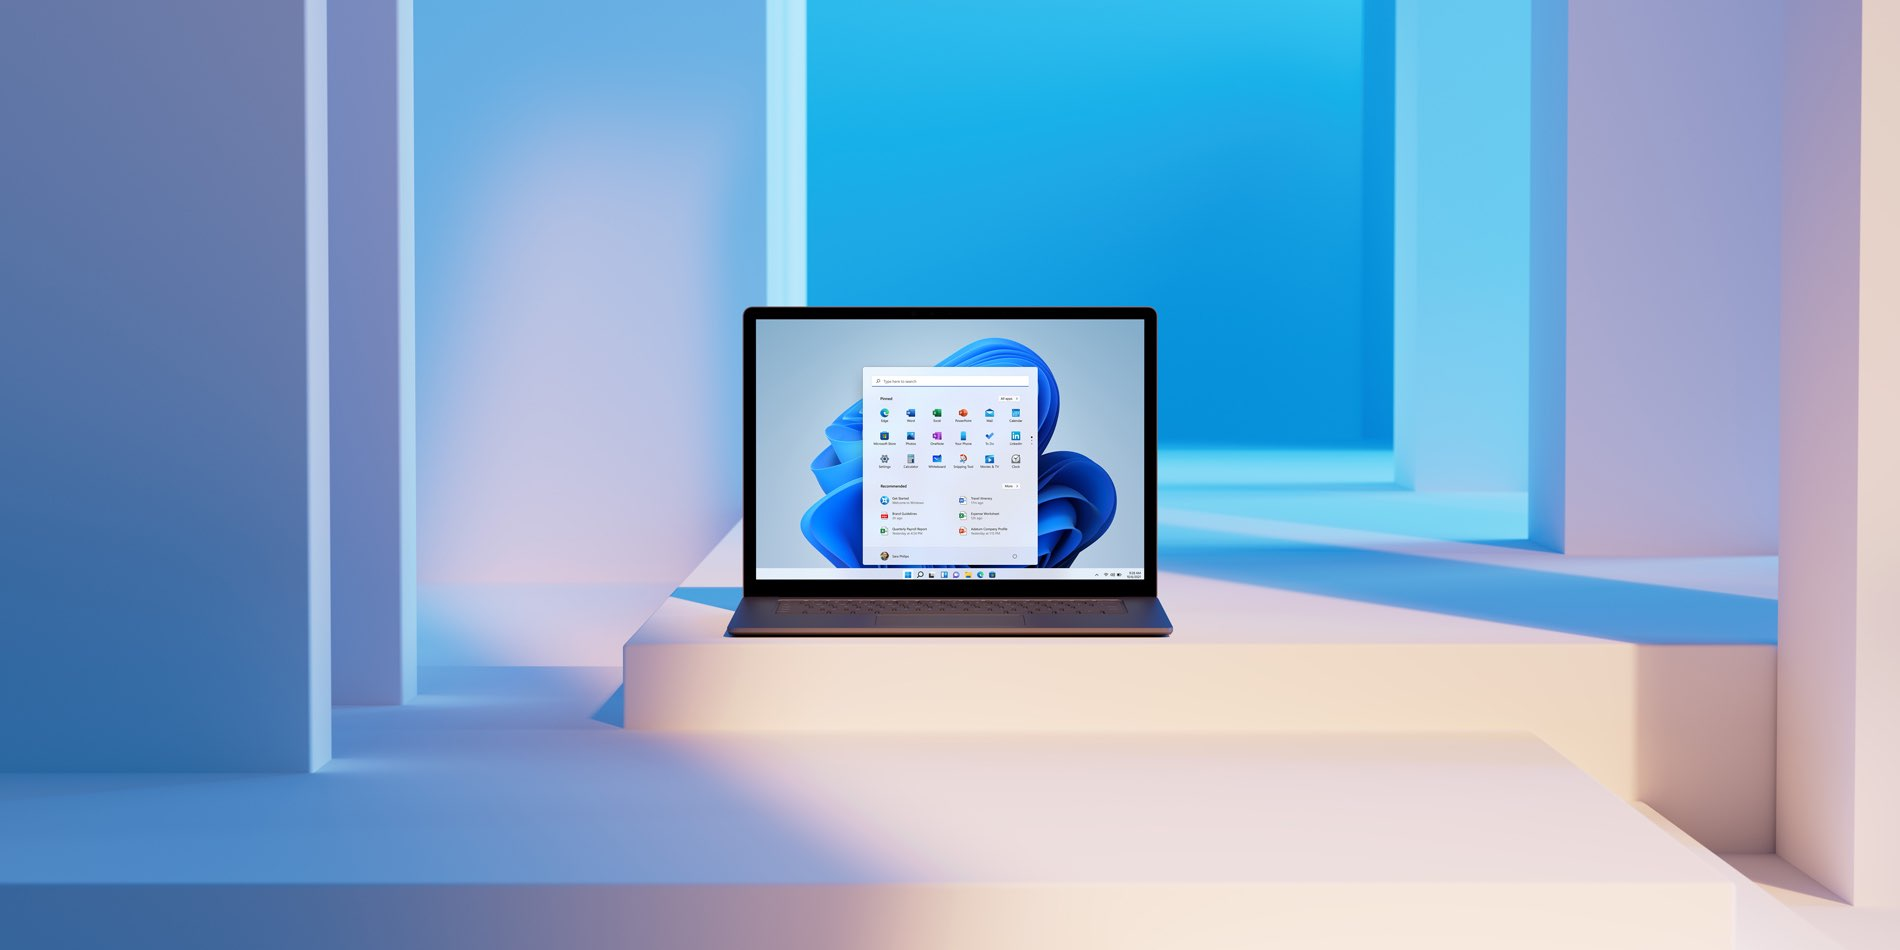 A Microsoft promotional image showing a Windows 11 PC with the centered Start menu